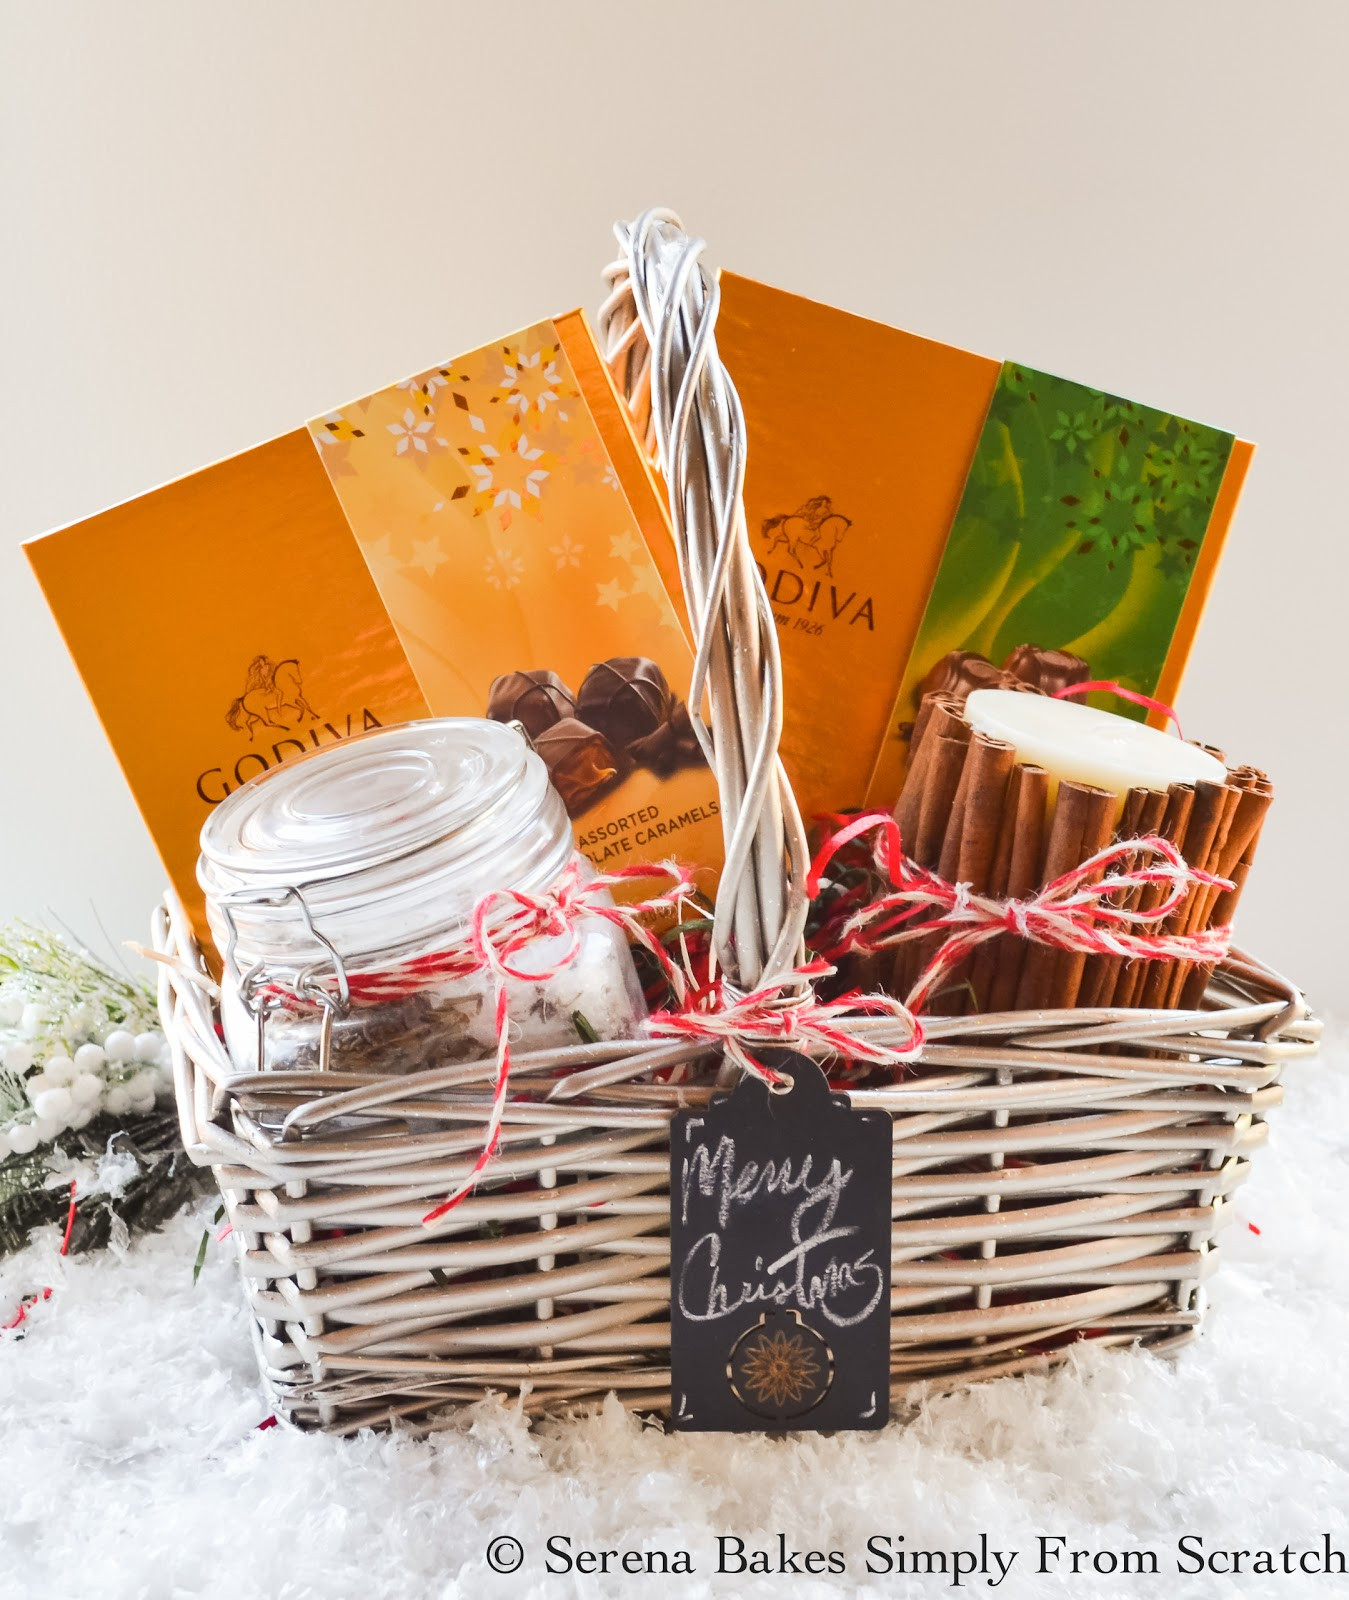 Best ideas about Holiday Gift Basket Ideas . Save or Pin Holiday Gift Basket Ideas Now.